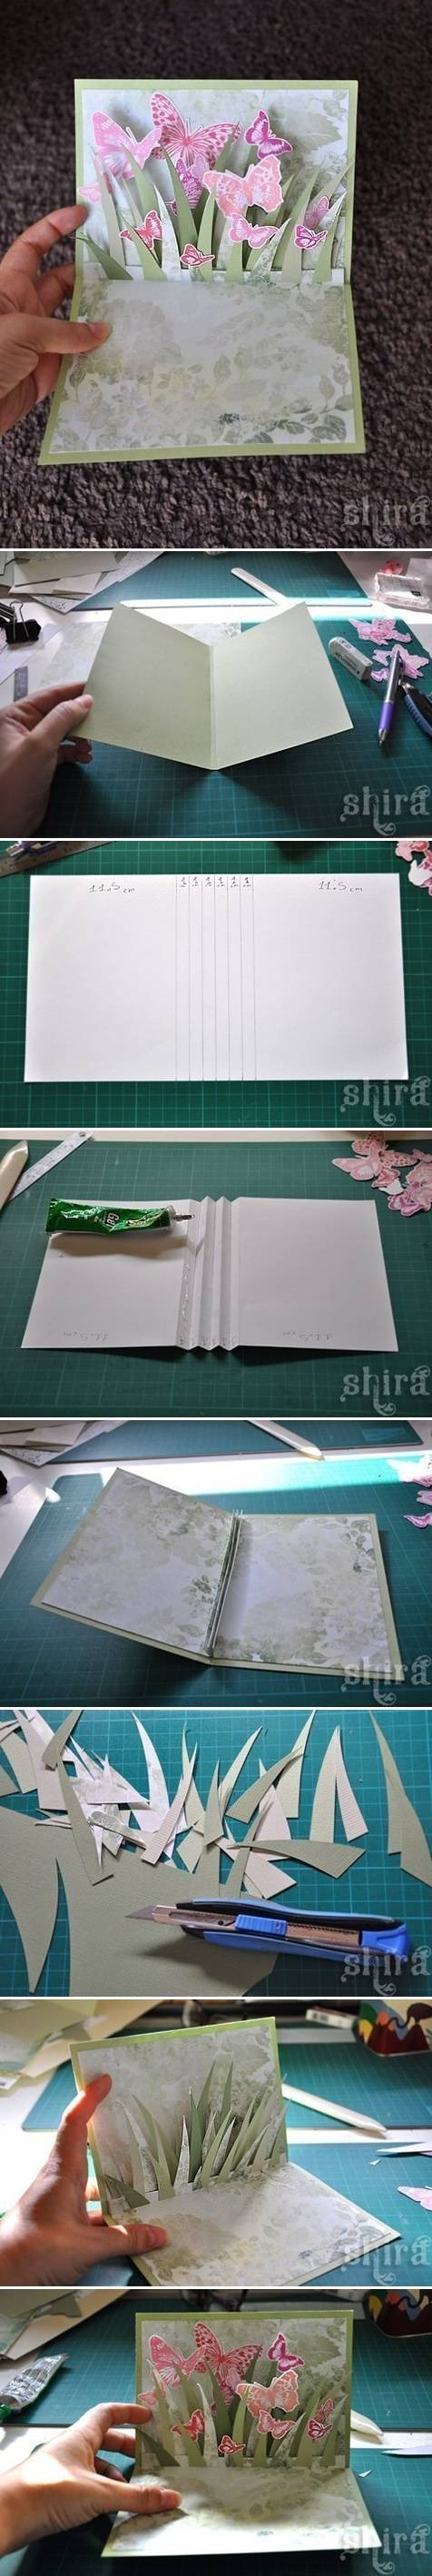 DIY-3D-Butterfly-Card.jpg